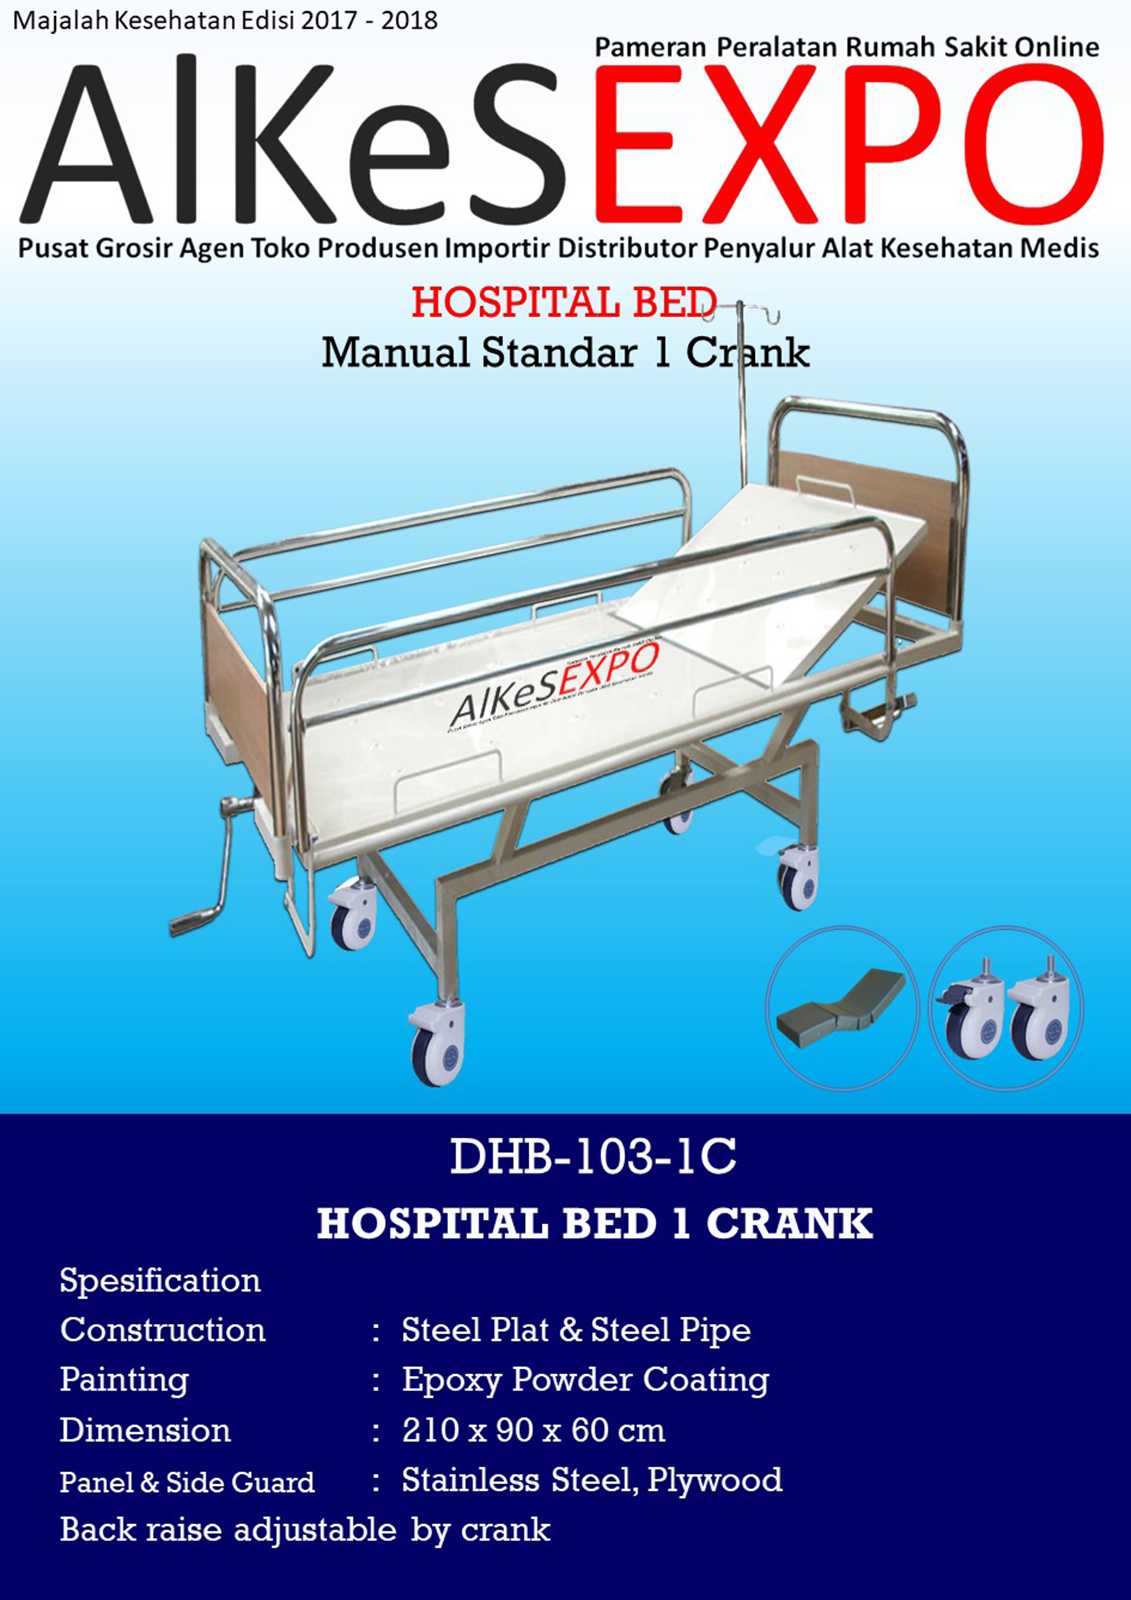 Hospital Bed Manual Standar 1 Crank DHB-103-1C